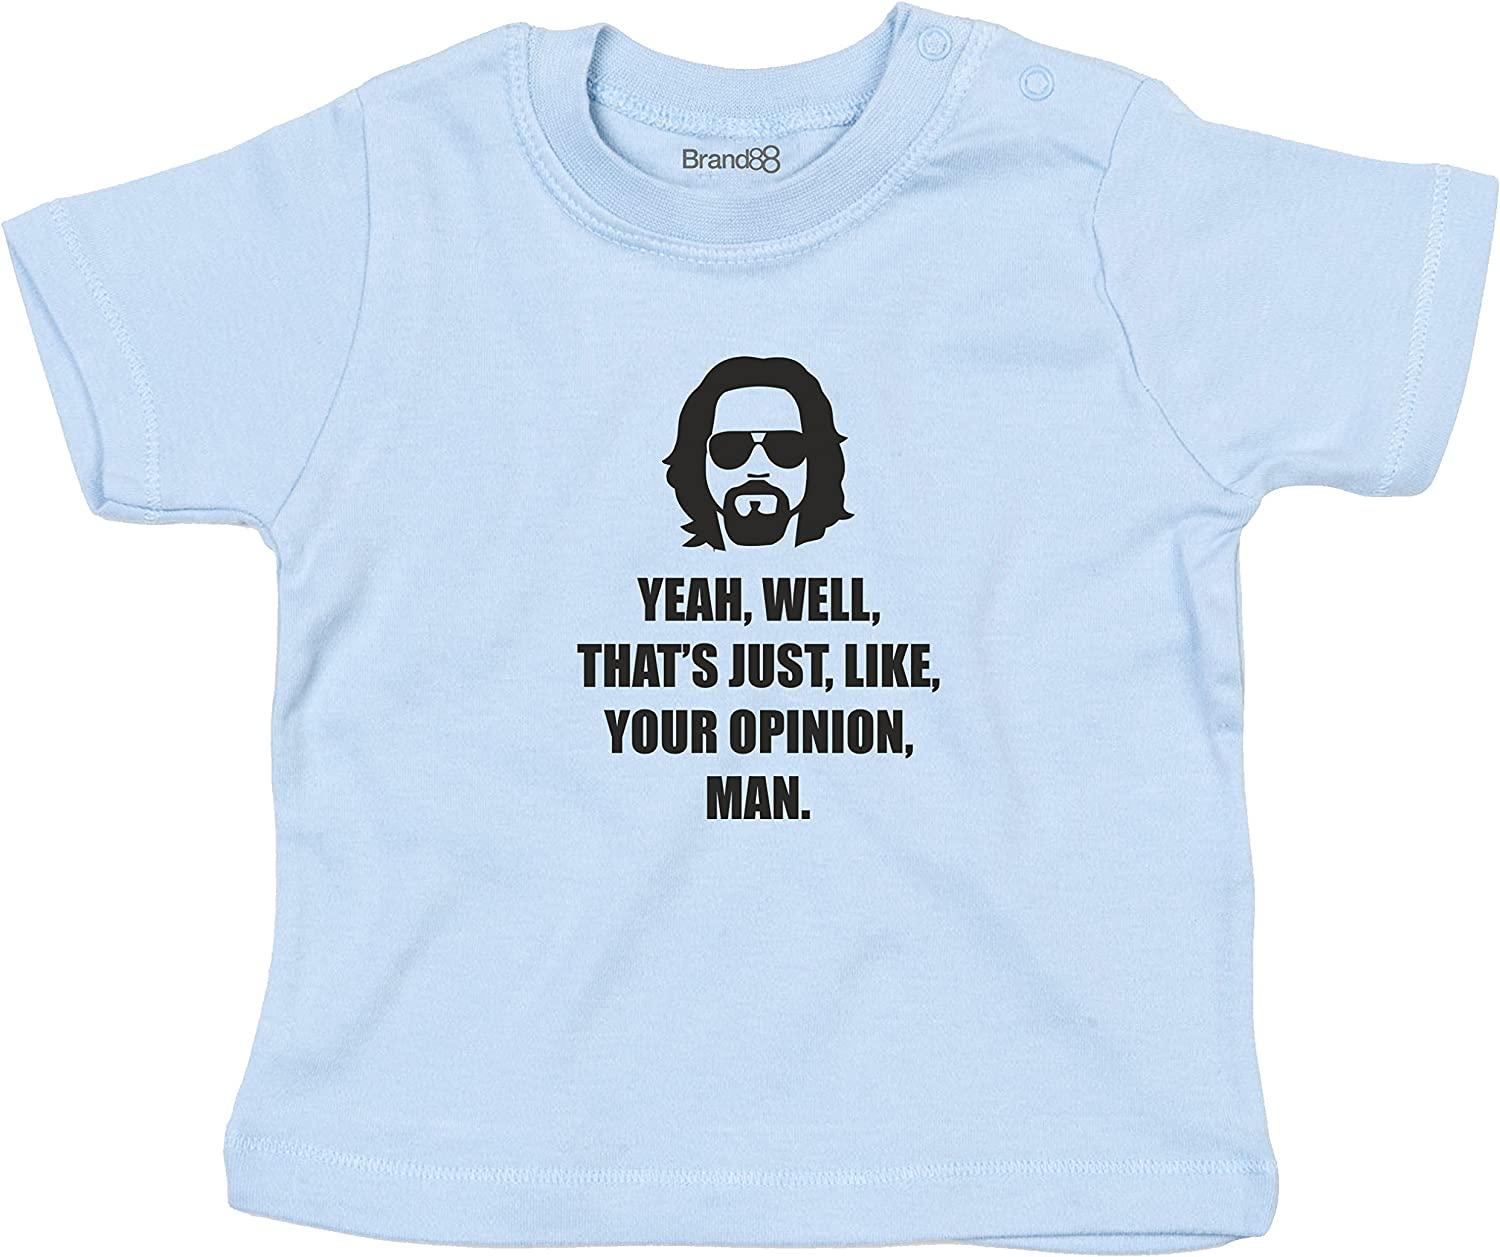 Man Brand88 Your Opinion Baby T-Shirt